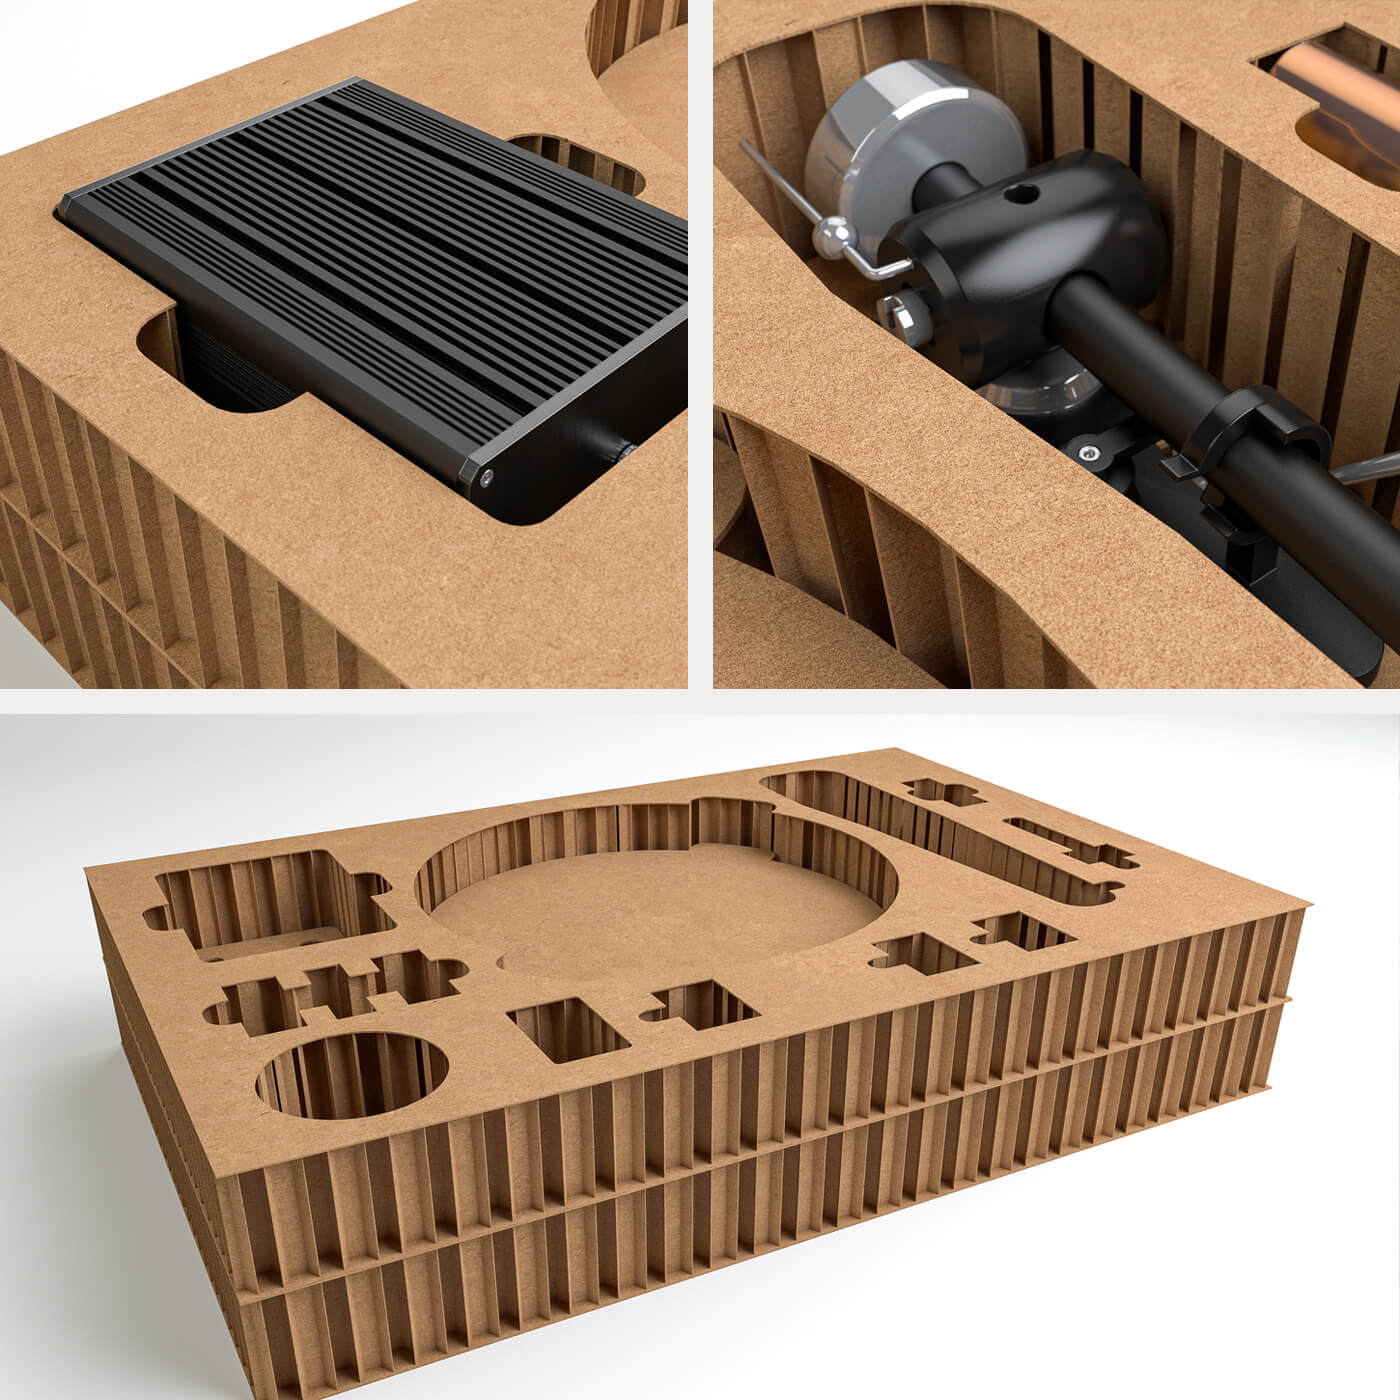 Bespoke packaging solutions by Dufaylite